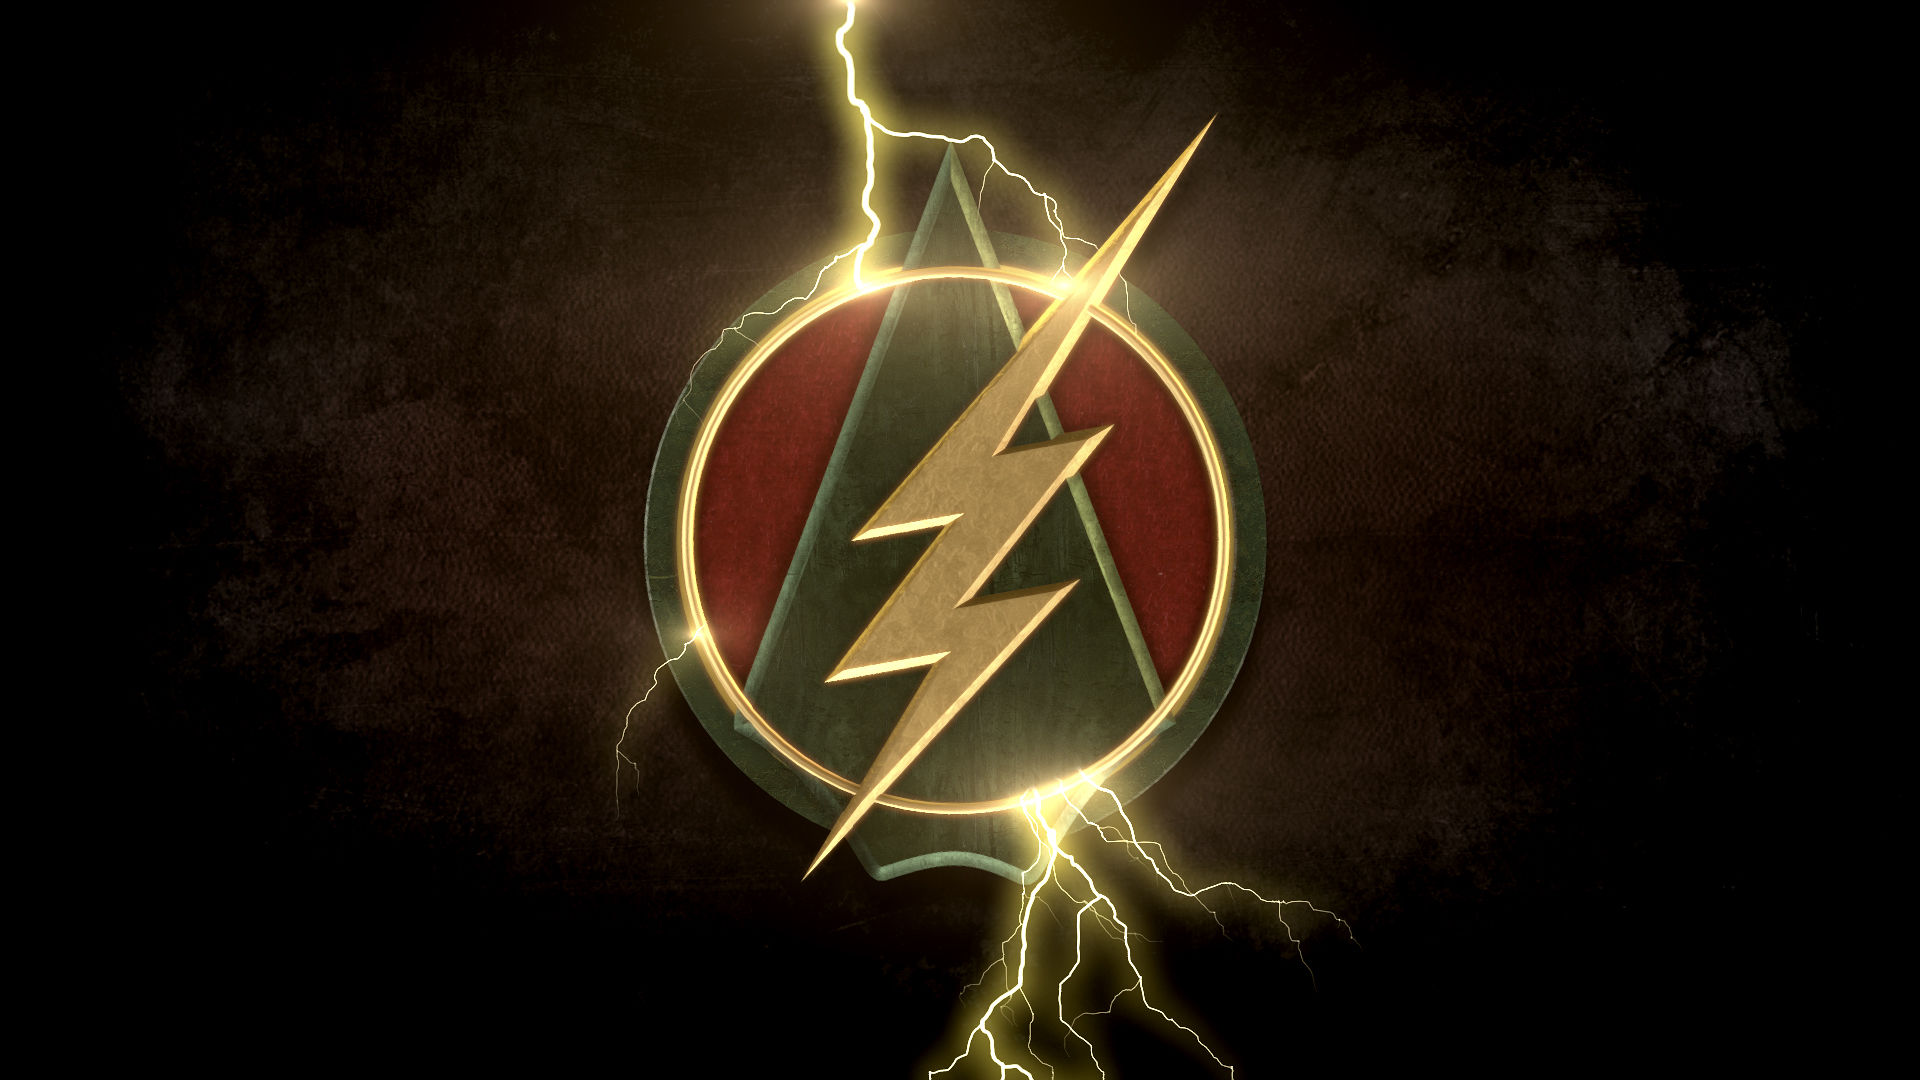 Collection of Flash Logo Wallpaper on HDWallpapers 1920x1080